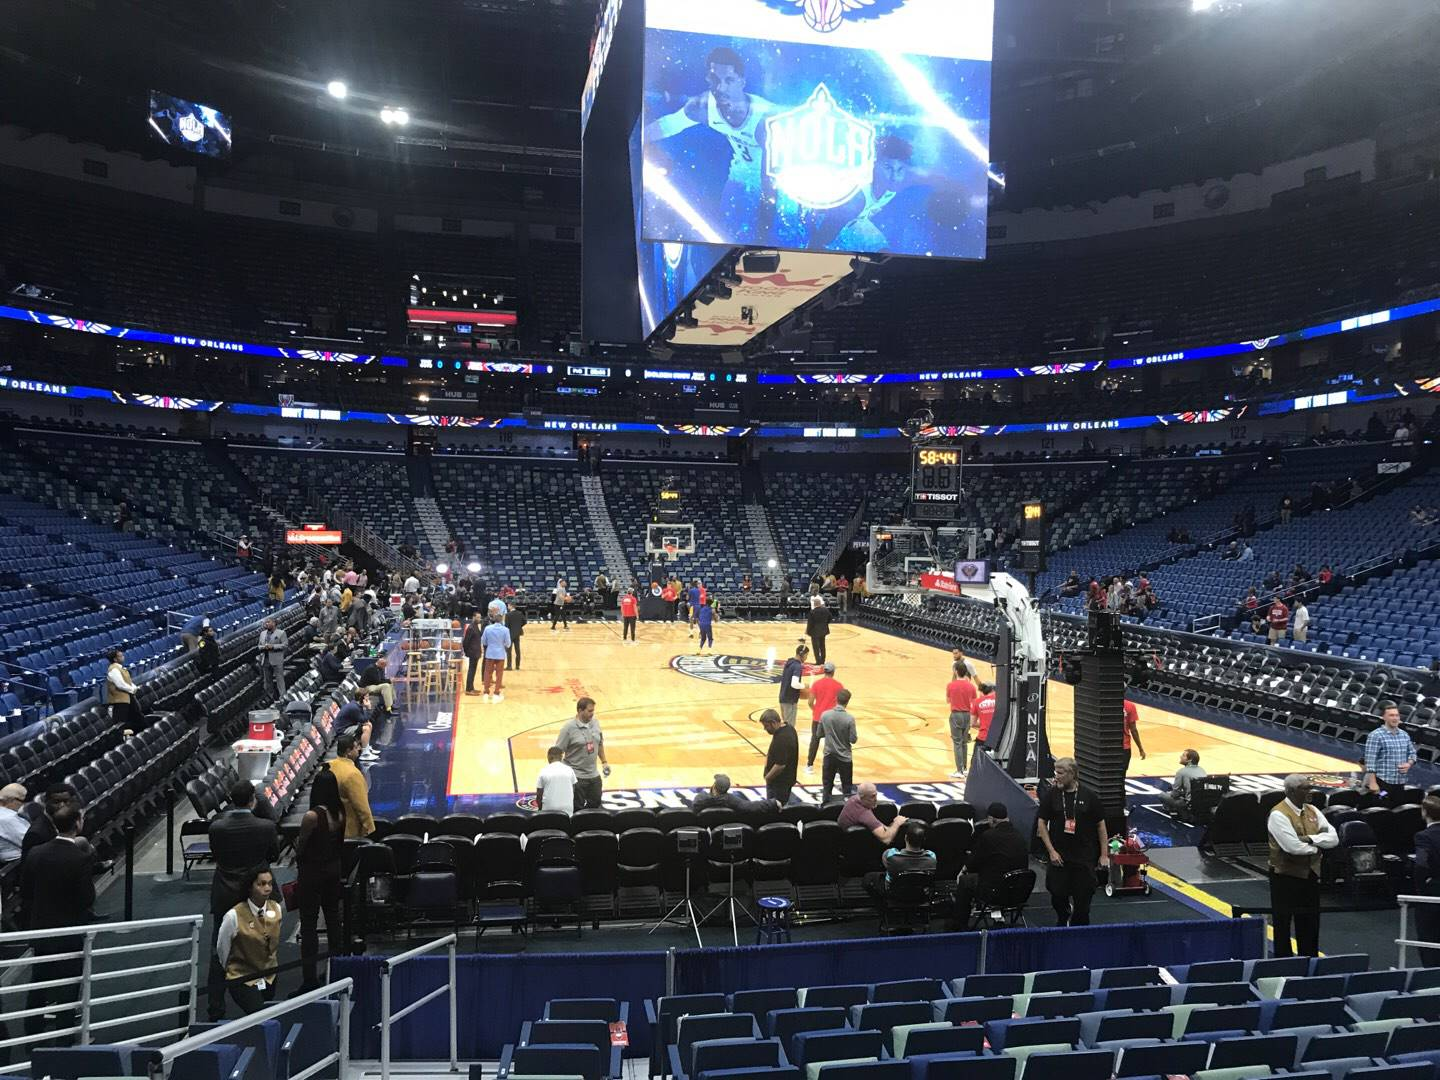 Smoothie King Center Section 107 Row 10 Seat 12